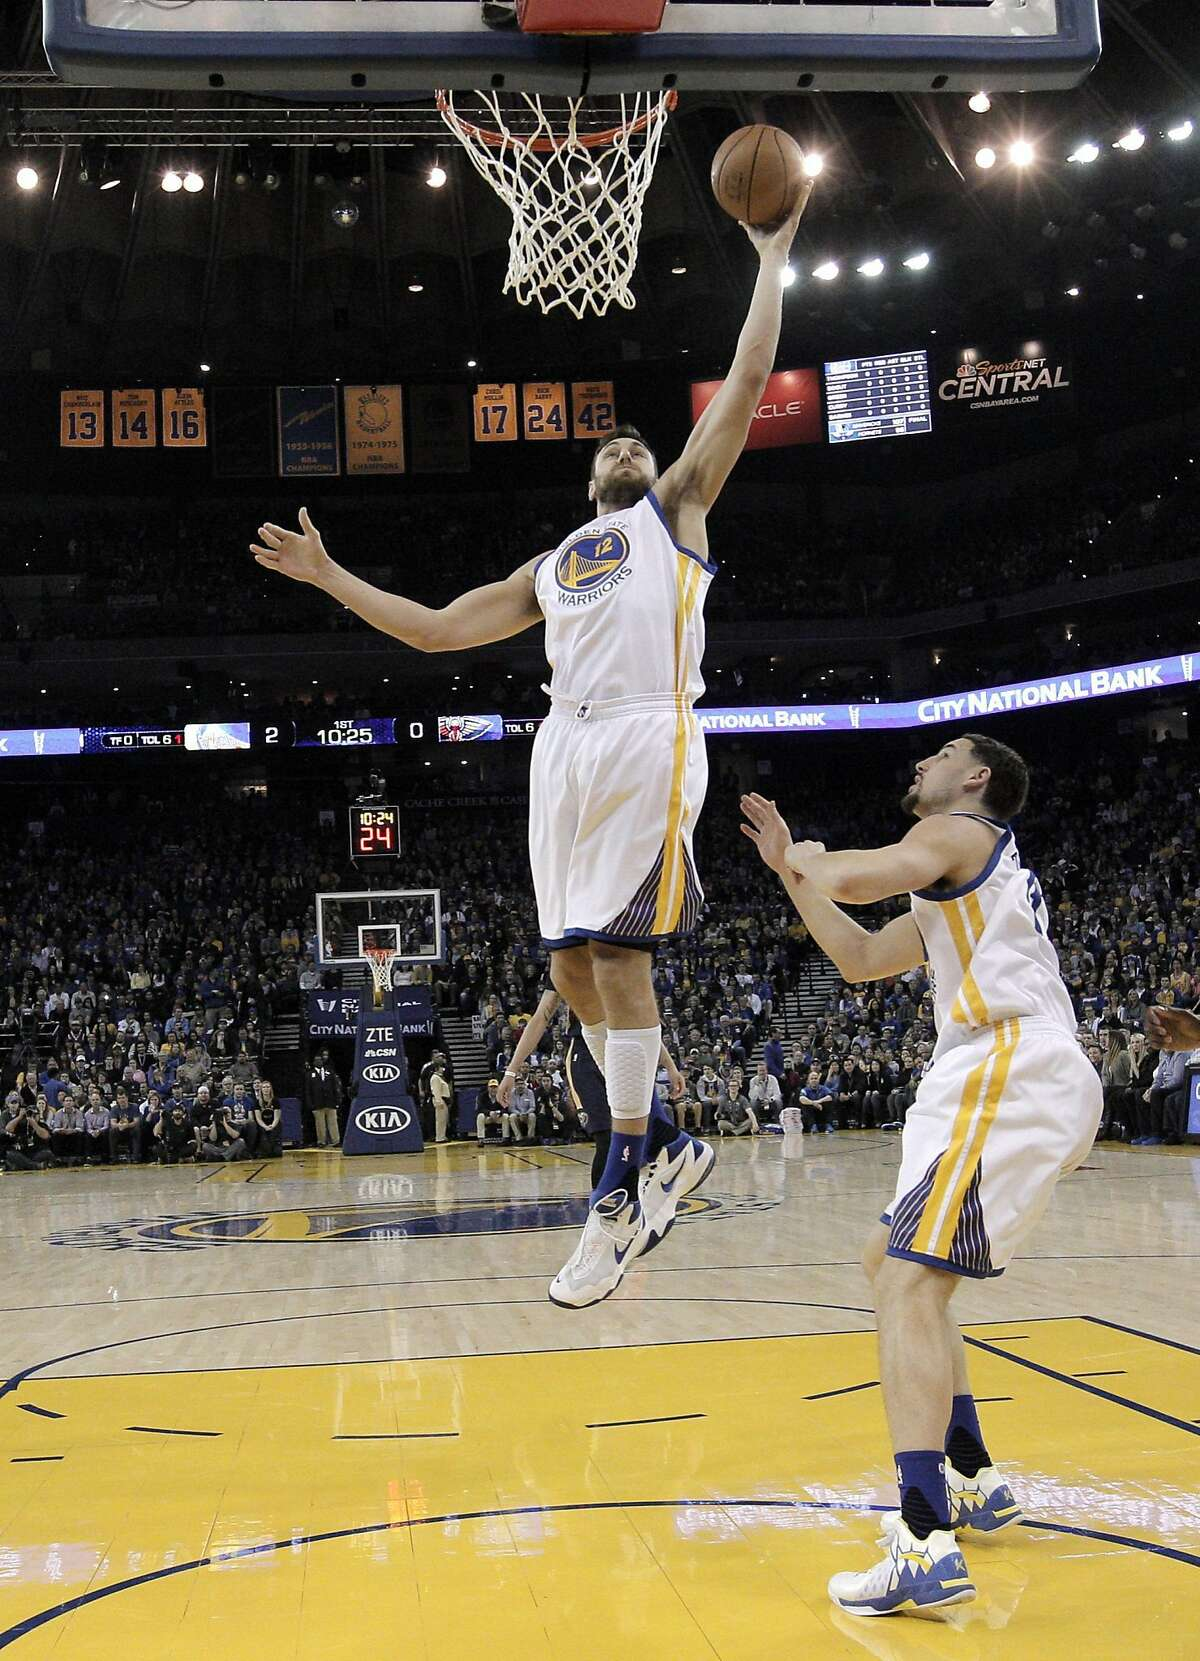 Andrew Bogut (12) grabs a rebound in the first half as the Golden State Warriors played the New Orleans Pelicans at Oracle Arena in Oakland, Calif., on Monday, March 14, 2016.